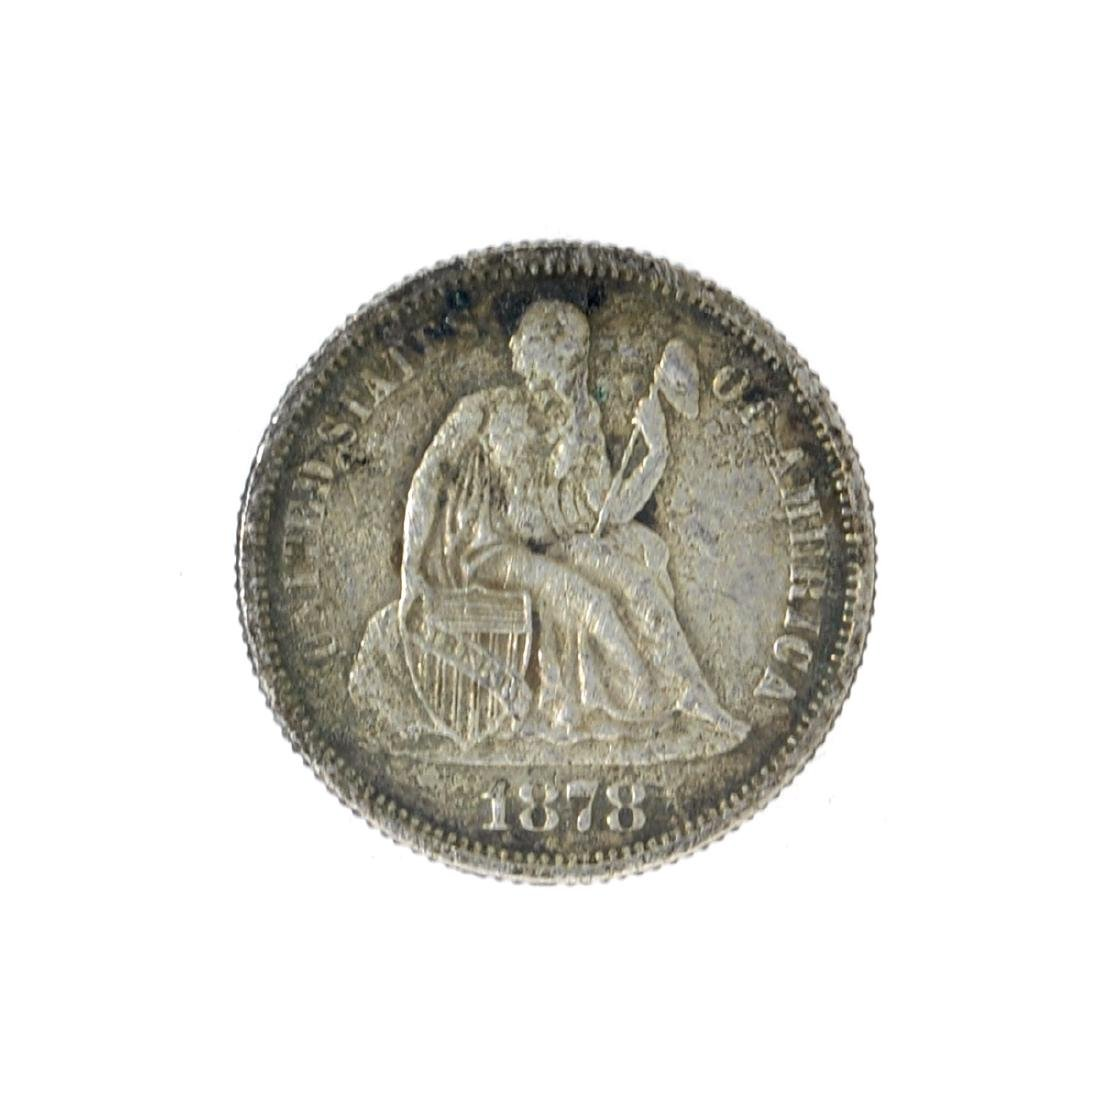 1878 Liberty Seated Dime Coin